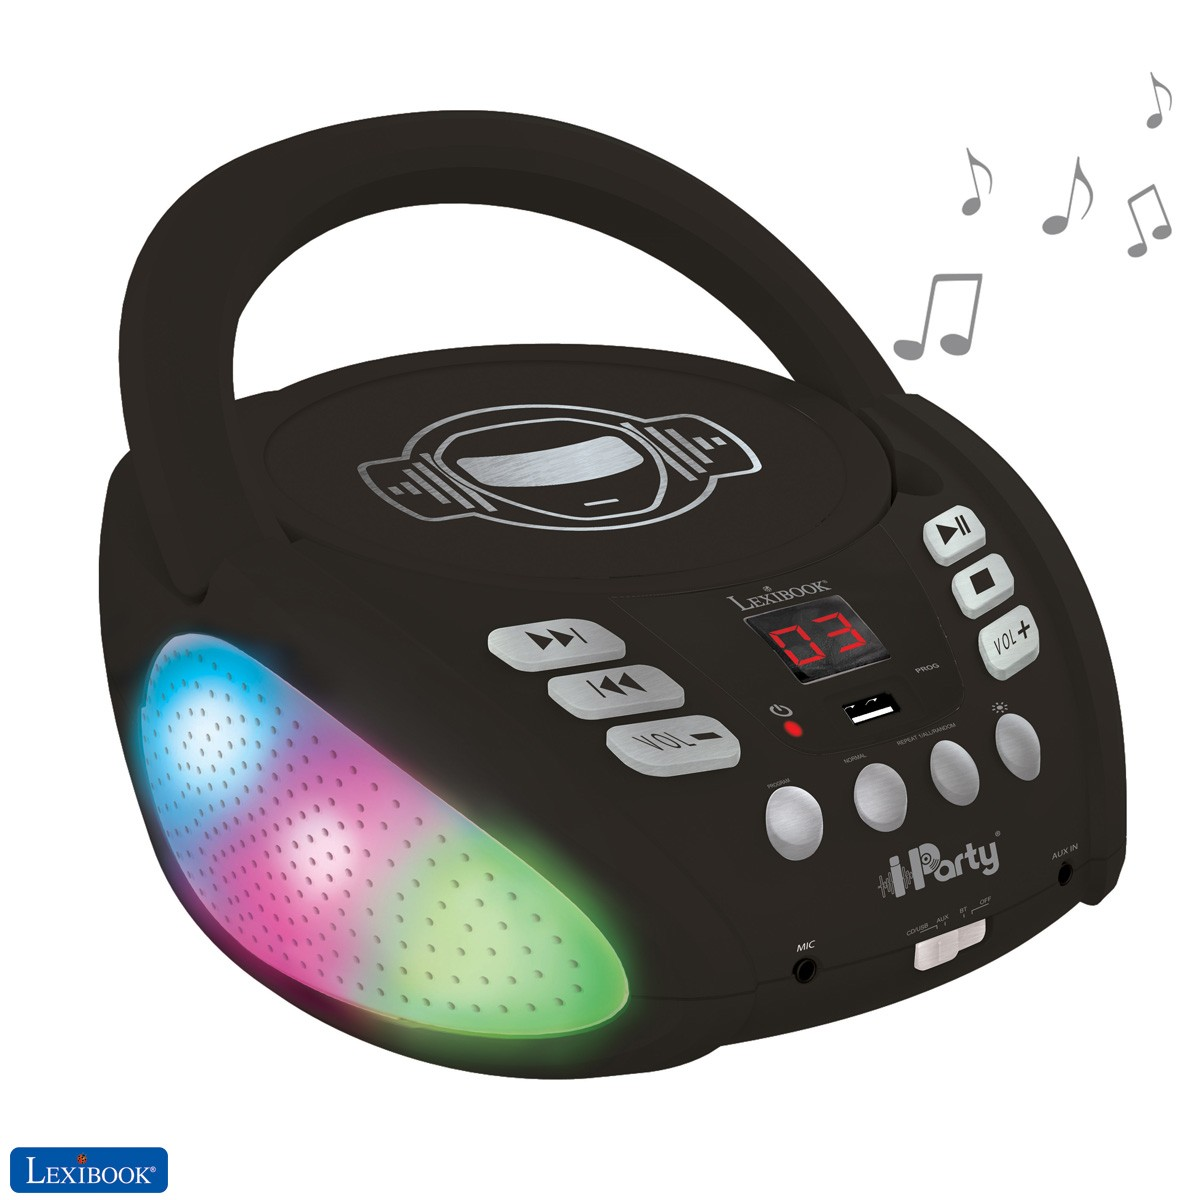 iParty - Bluetooth CD player for kids